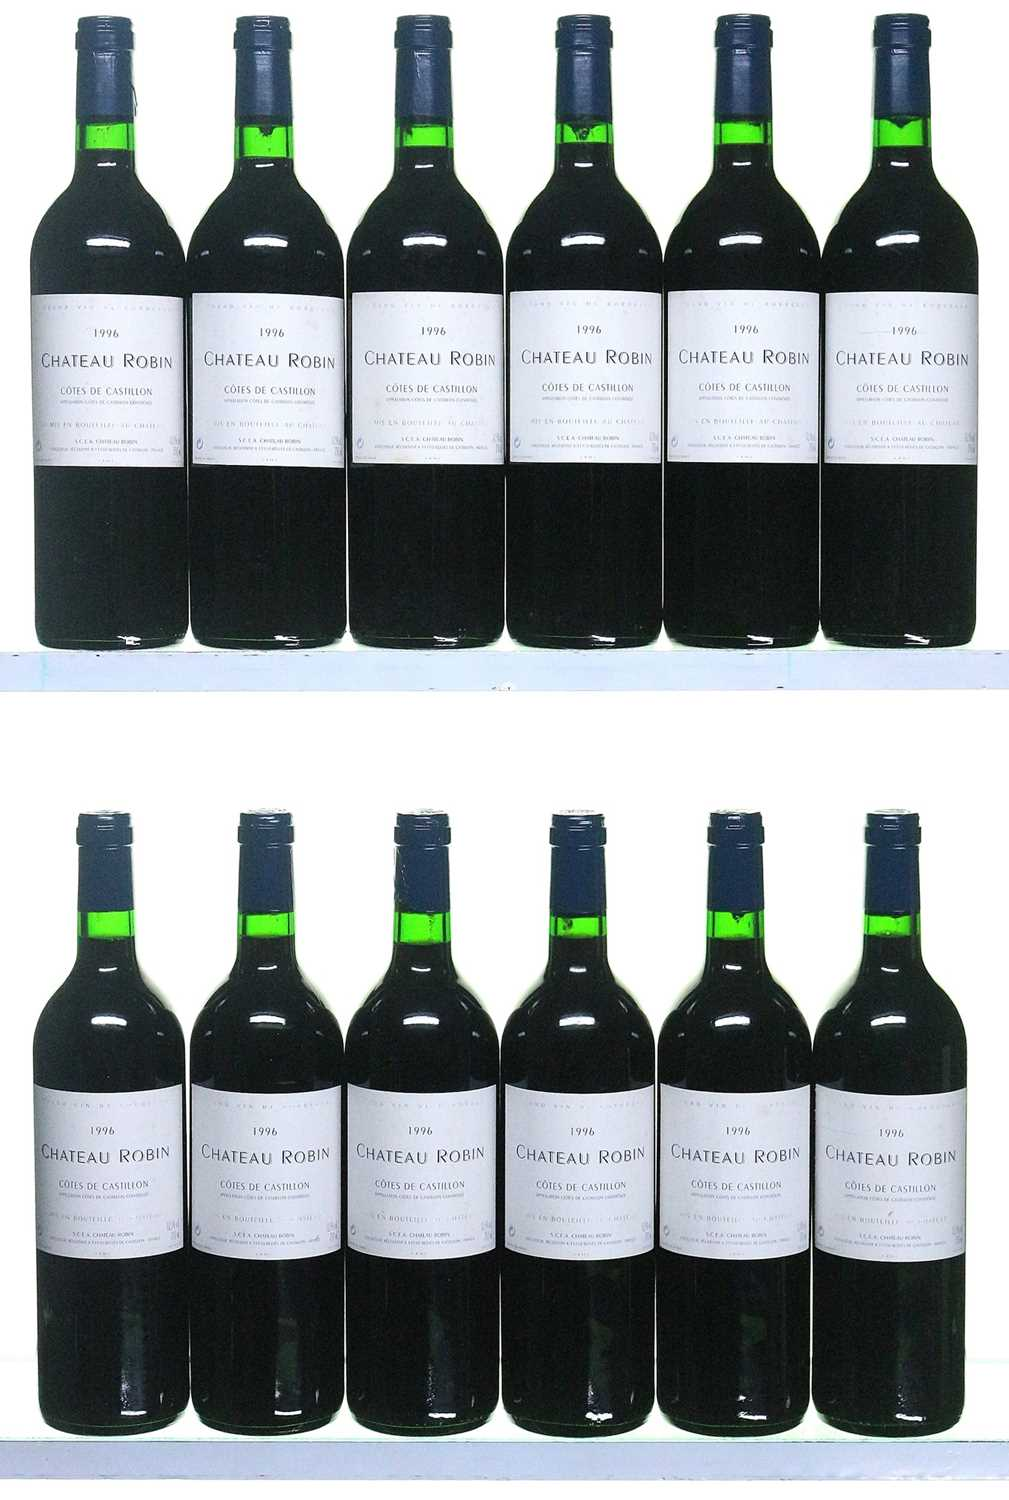 Lot 10-12 bottles 1995 Chateau Robin